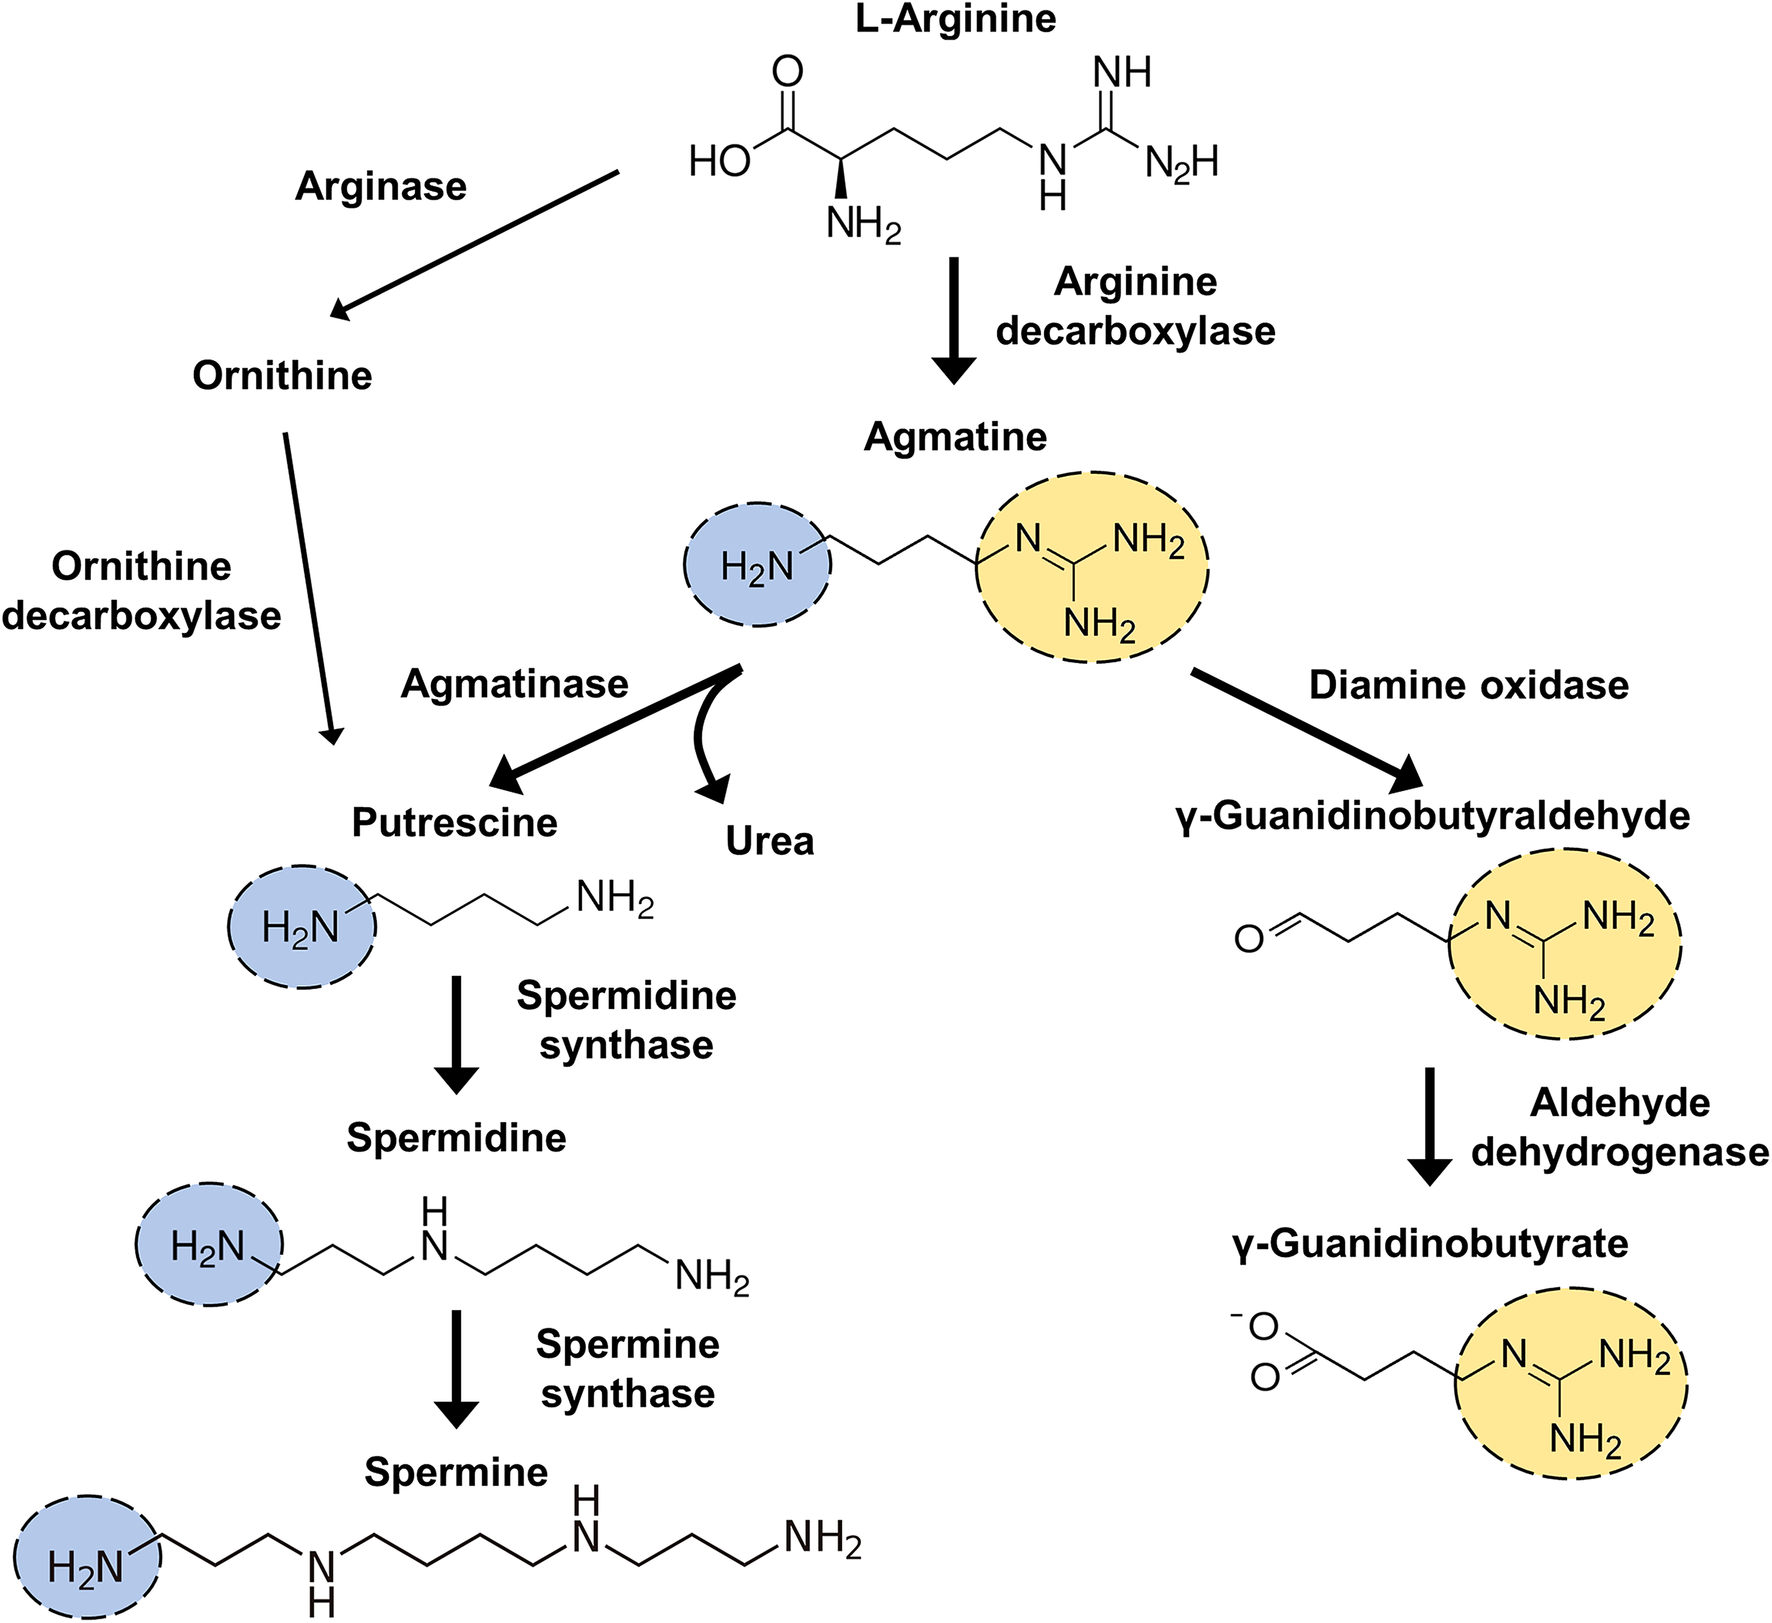 Therapeutic Effect of Agmatine on Neurological Disease: Focus on Ion